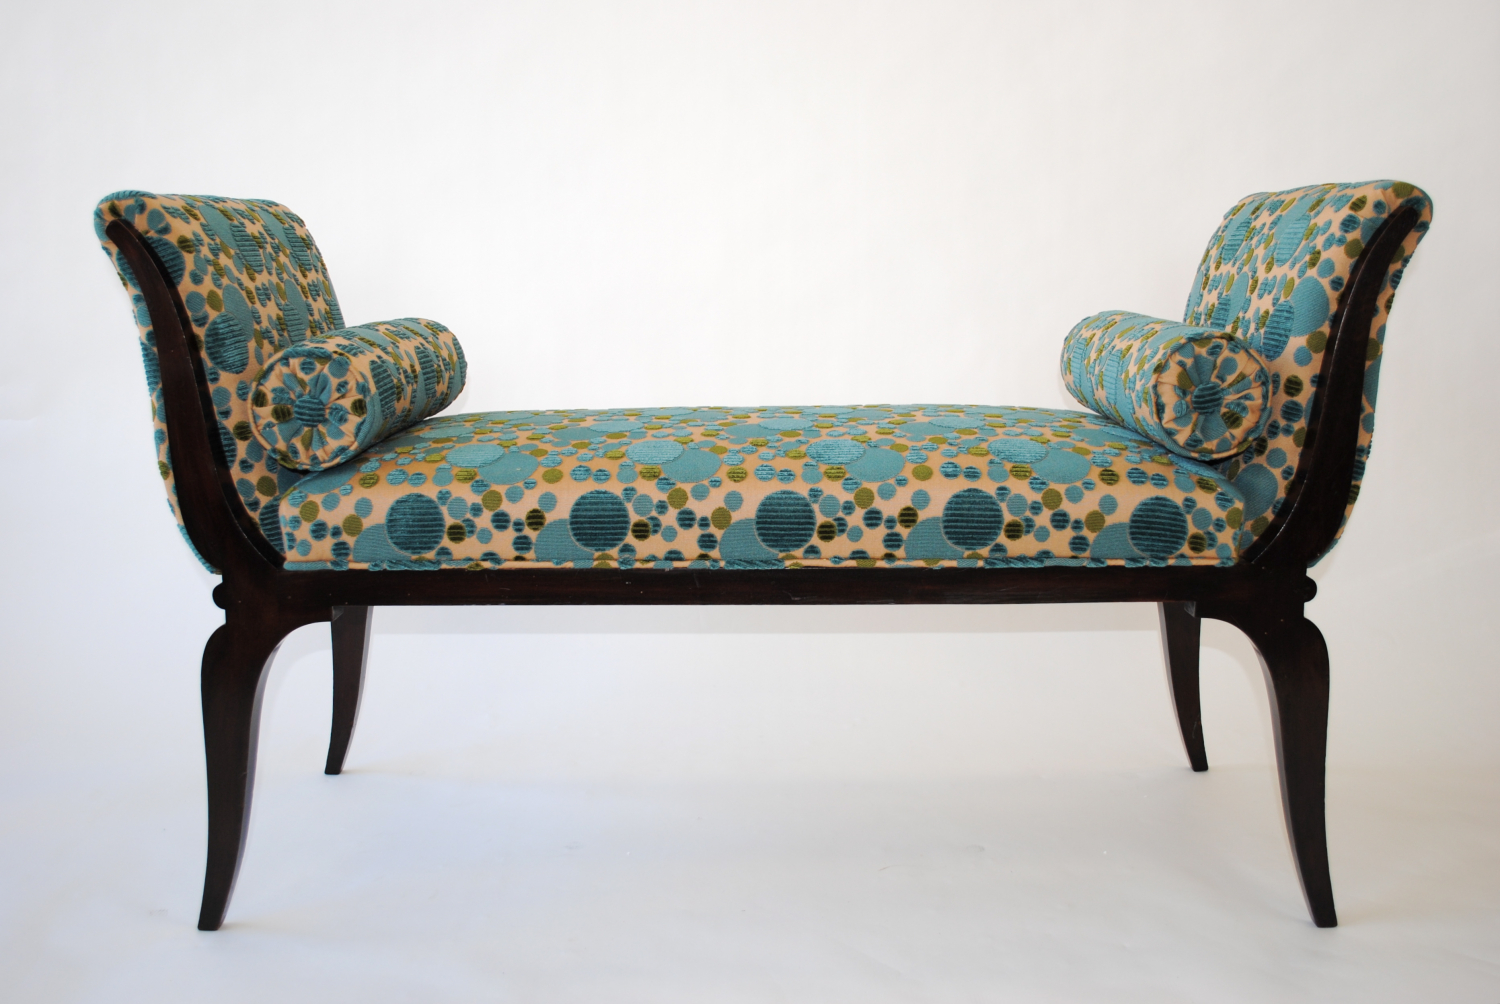 Banquette / Chaise